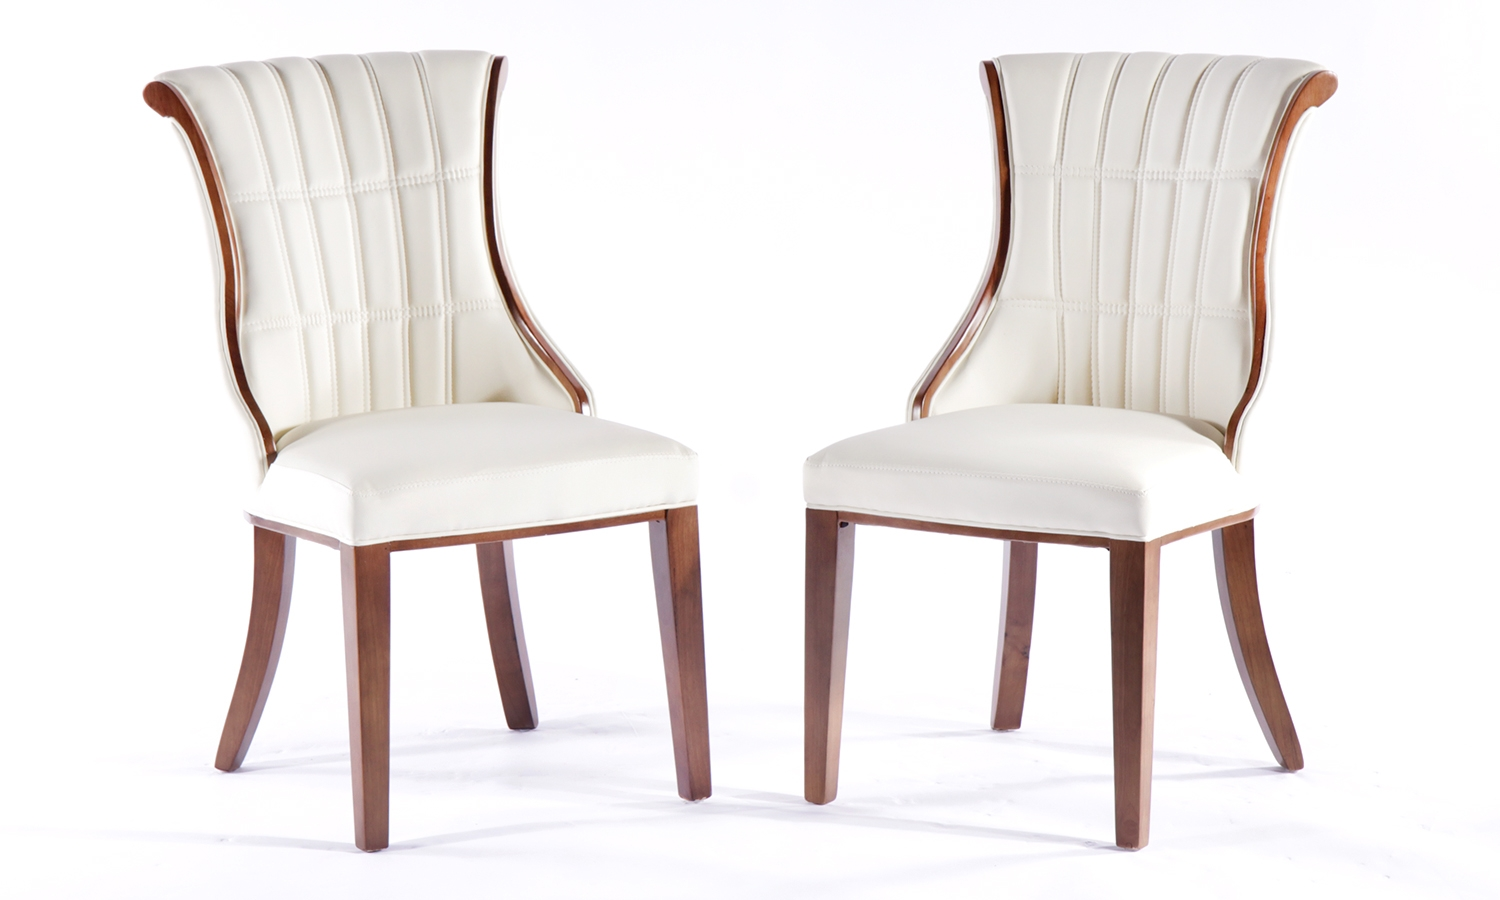 Urban Deco Seville Beige Faux Leather Dining Chair (Pair)